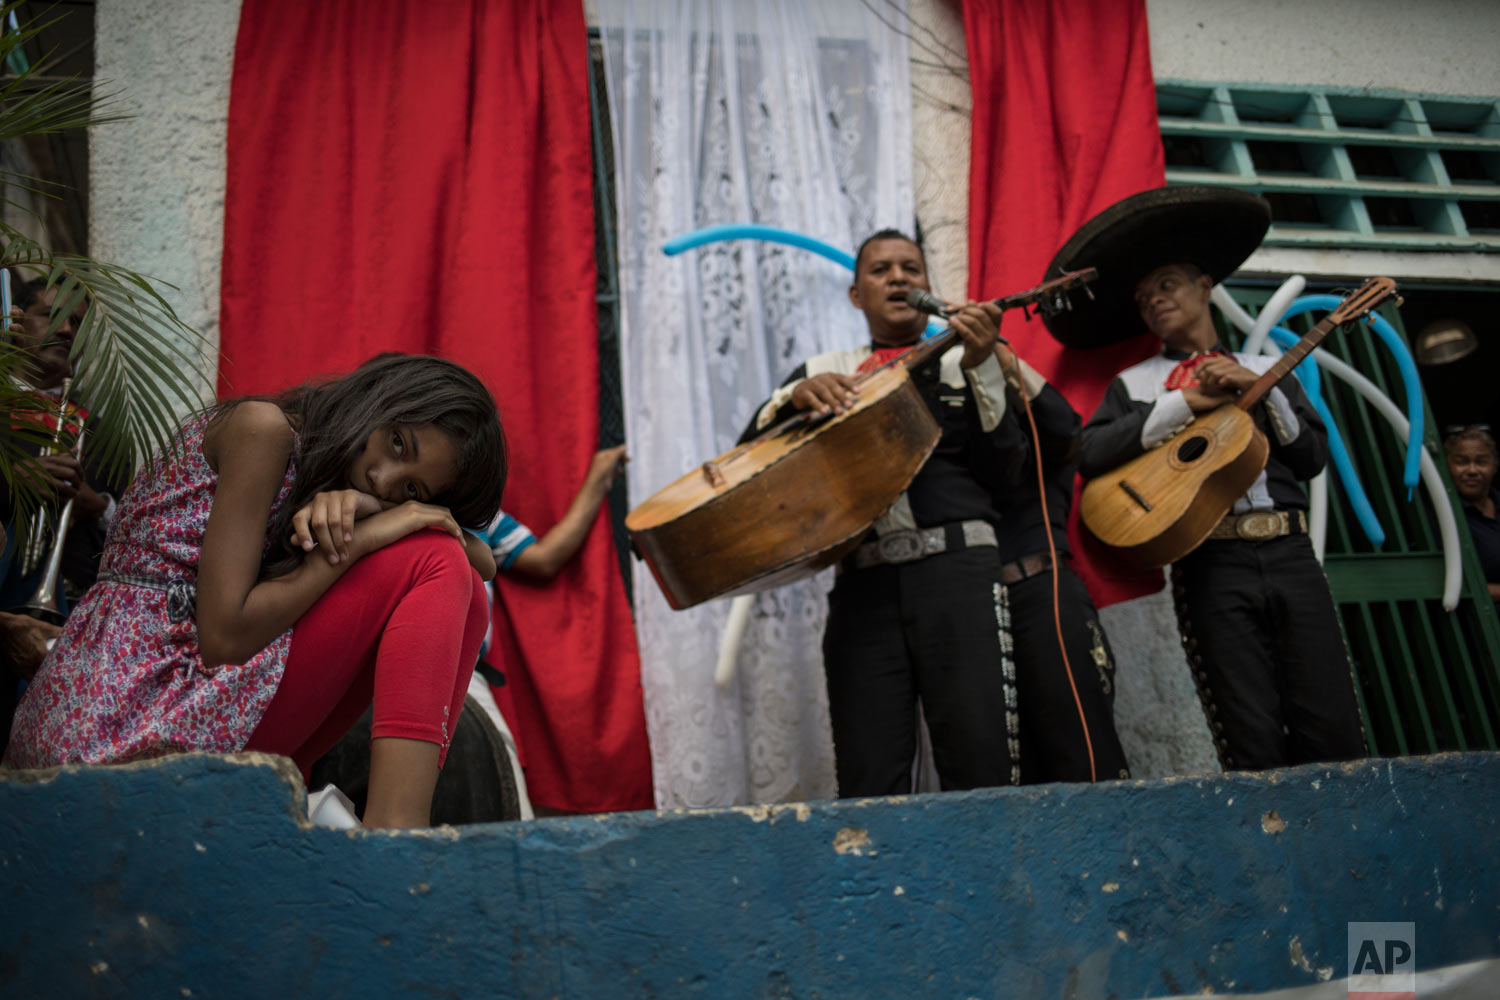 A girl lays her head down as she listens to mariachi musicians performing during a Mother's Day block party in Caracas, Venezuela, late Sunday, May 19, 2019. (AP Photo/Rodrigo Abd)